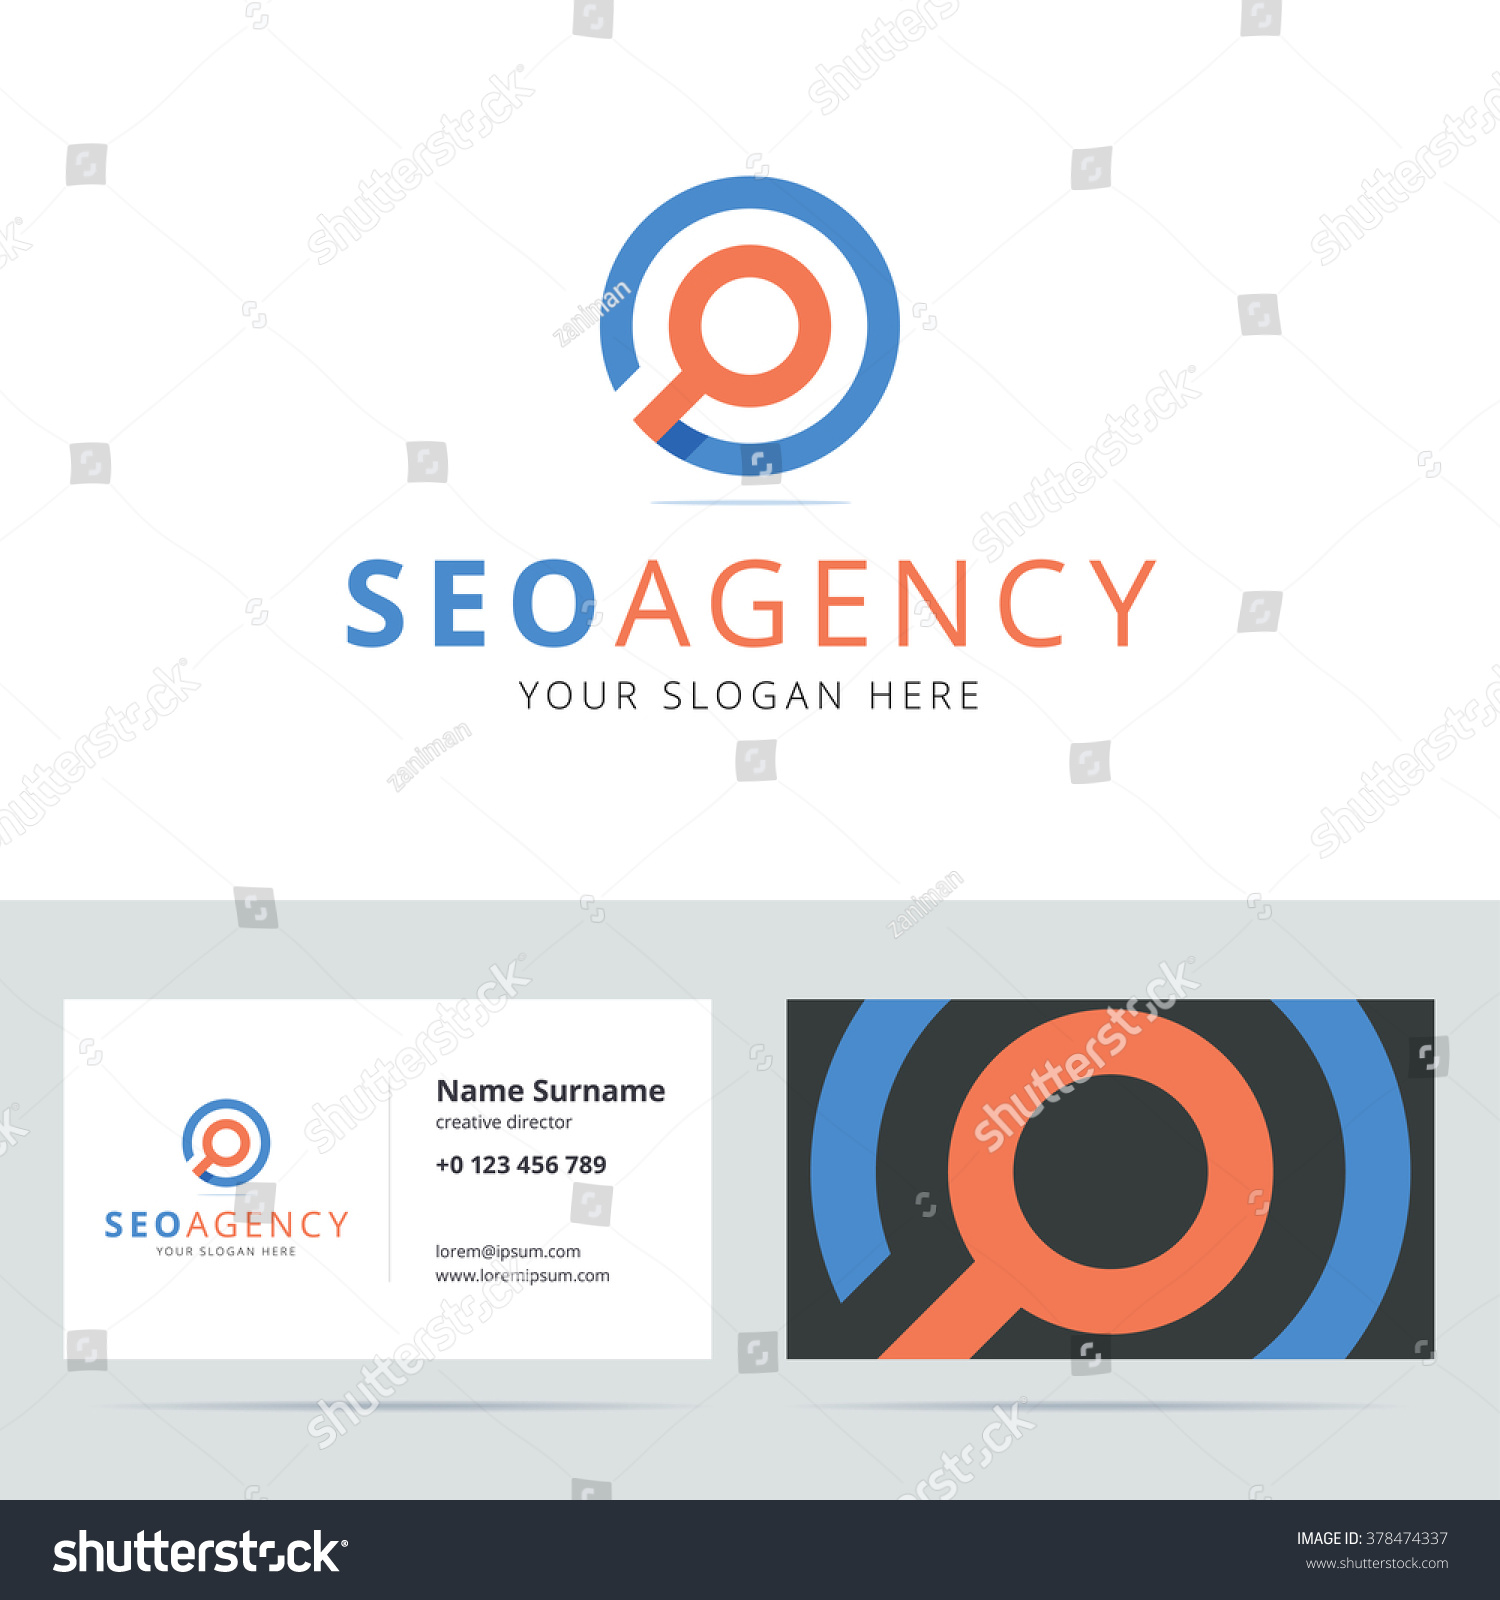 Search engine optimization research papers